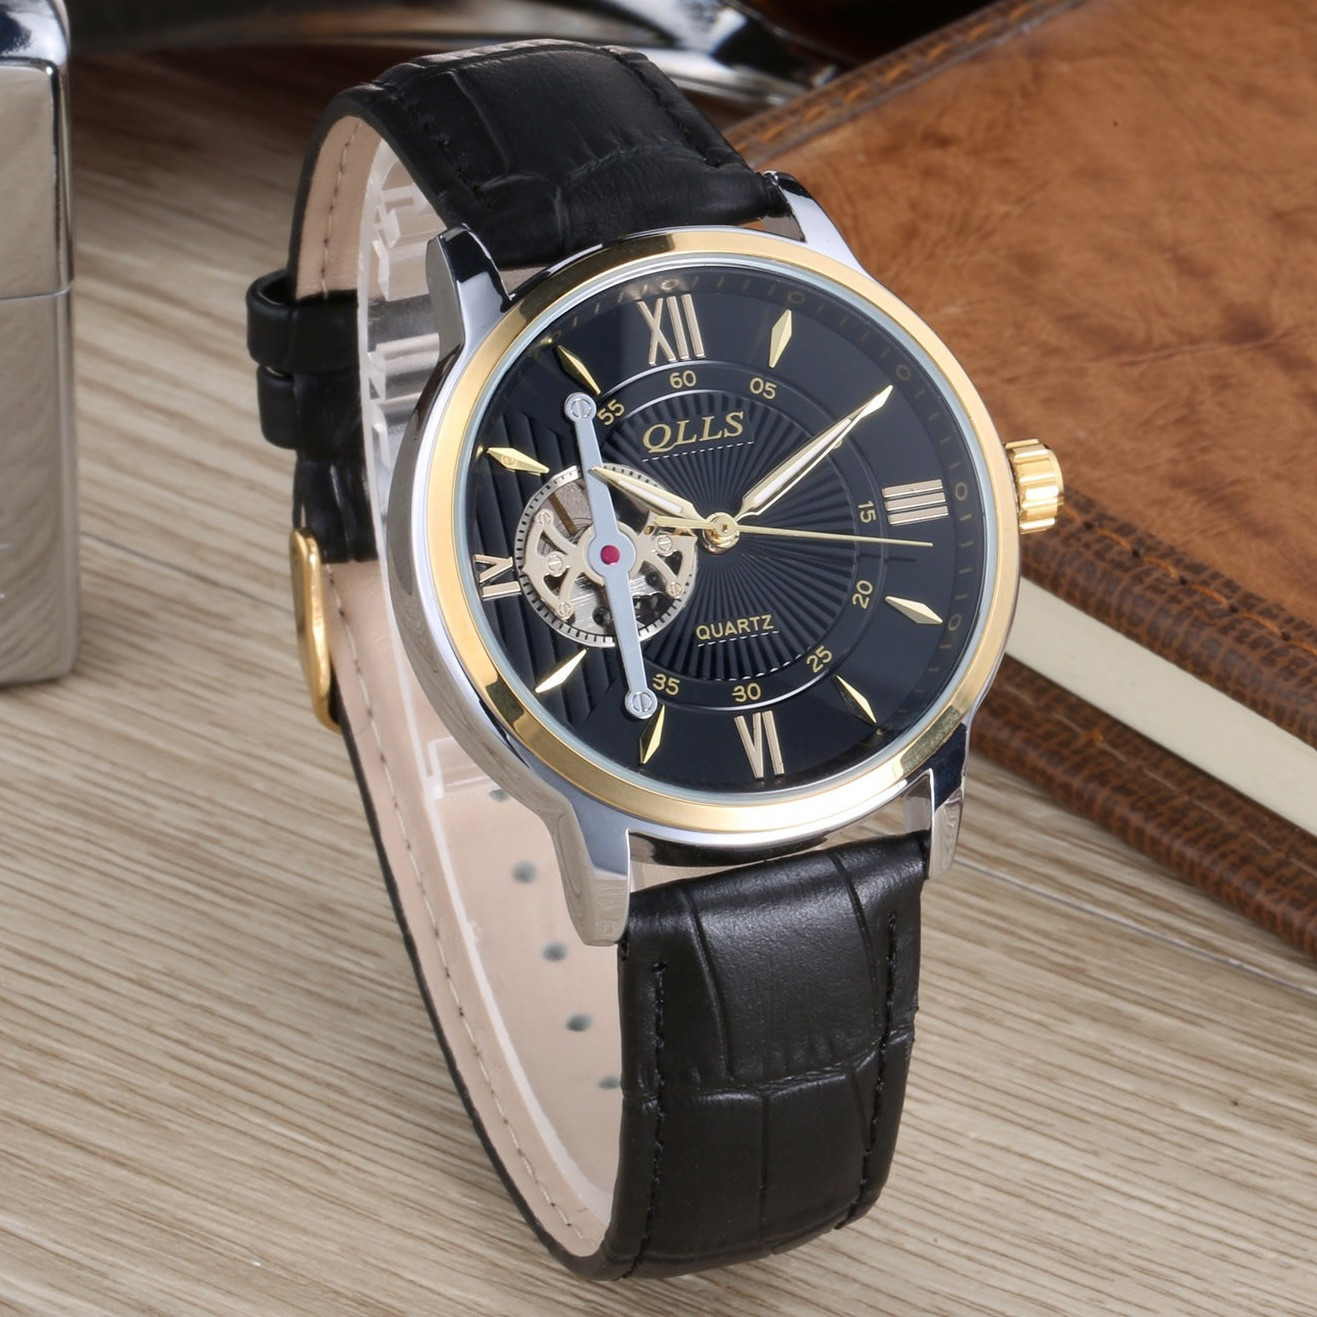 Reloj Hombre QLLS Tourbillon luxury brand Mens Watches Automatic Watch Gold Case Male Clock Mechanical Watch Relogio Masculino luxury watch men automatic mechanical watches qlls brand skeleton male clock military sport wristwatch reloj hombre